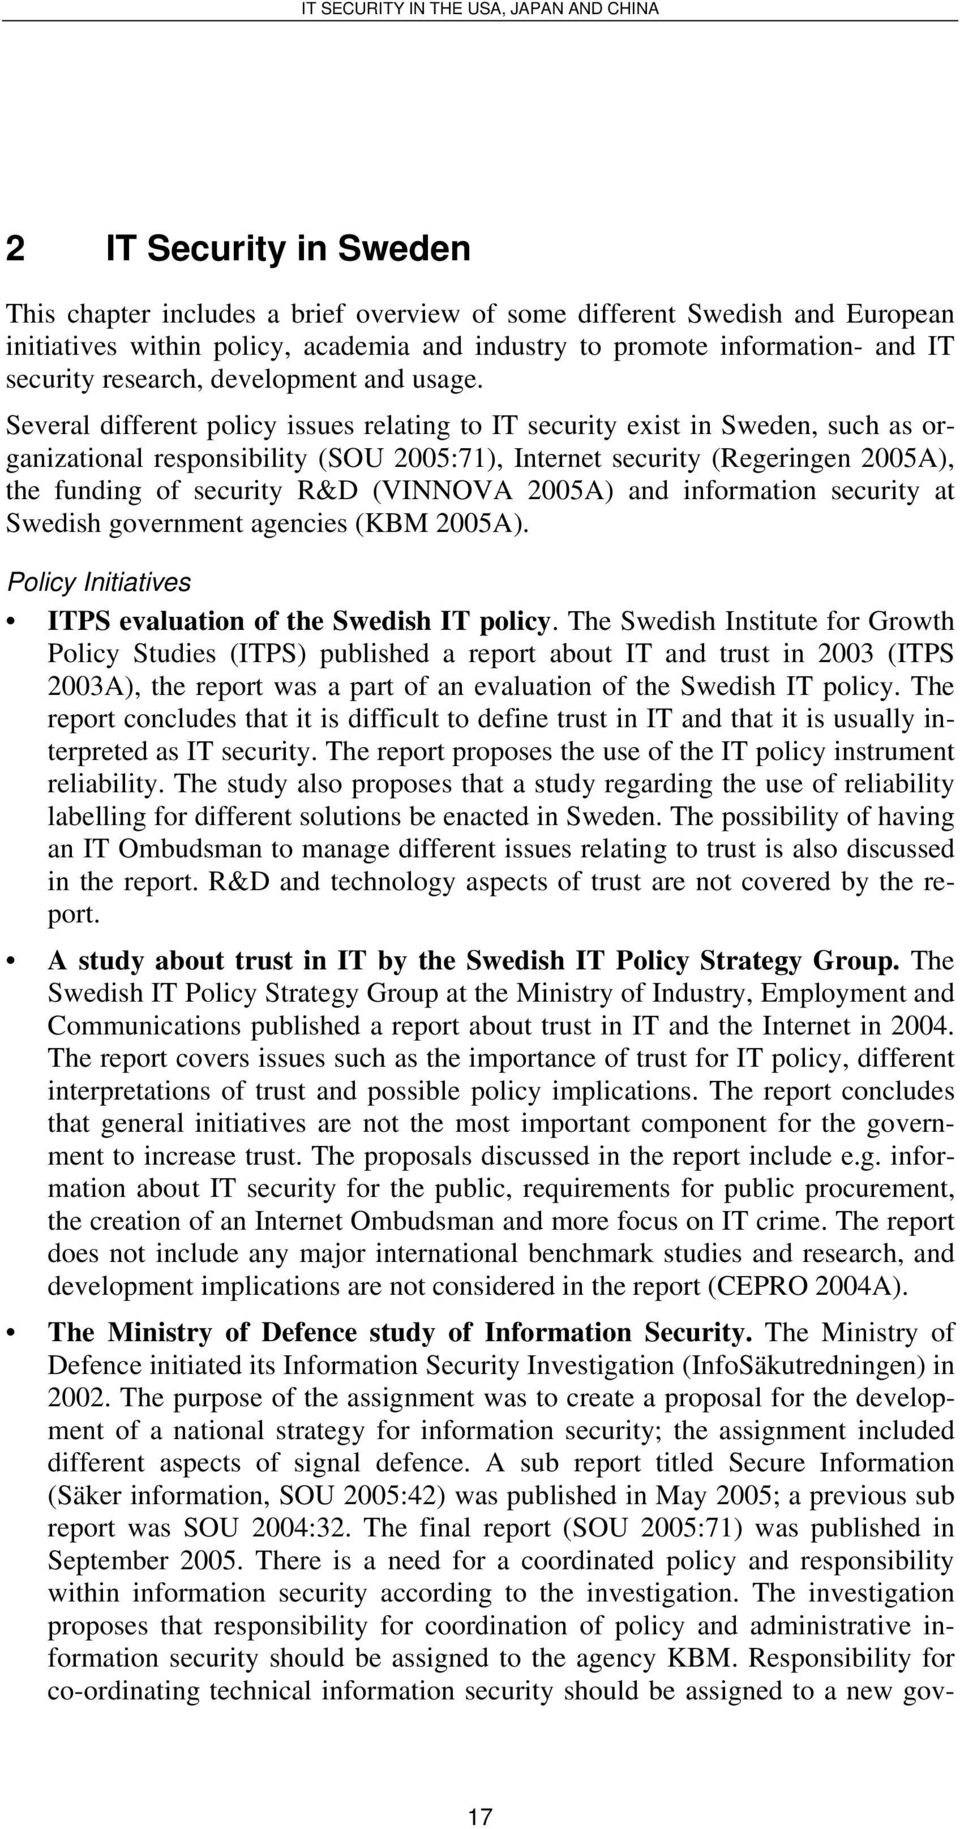 Several different policy issues relating to IT security exist in Sweden, such as organizational responsibility (SOU 2005:71), Internet security (Regeringen 2005A), the funding of security R&D